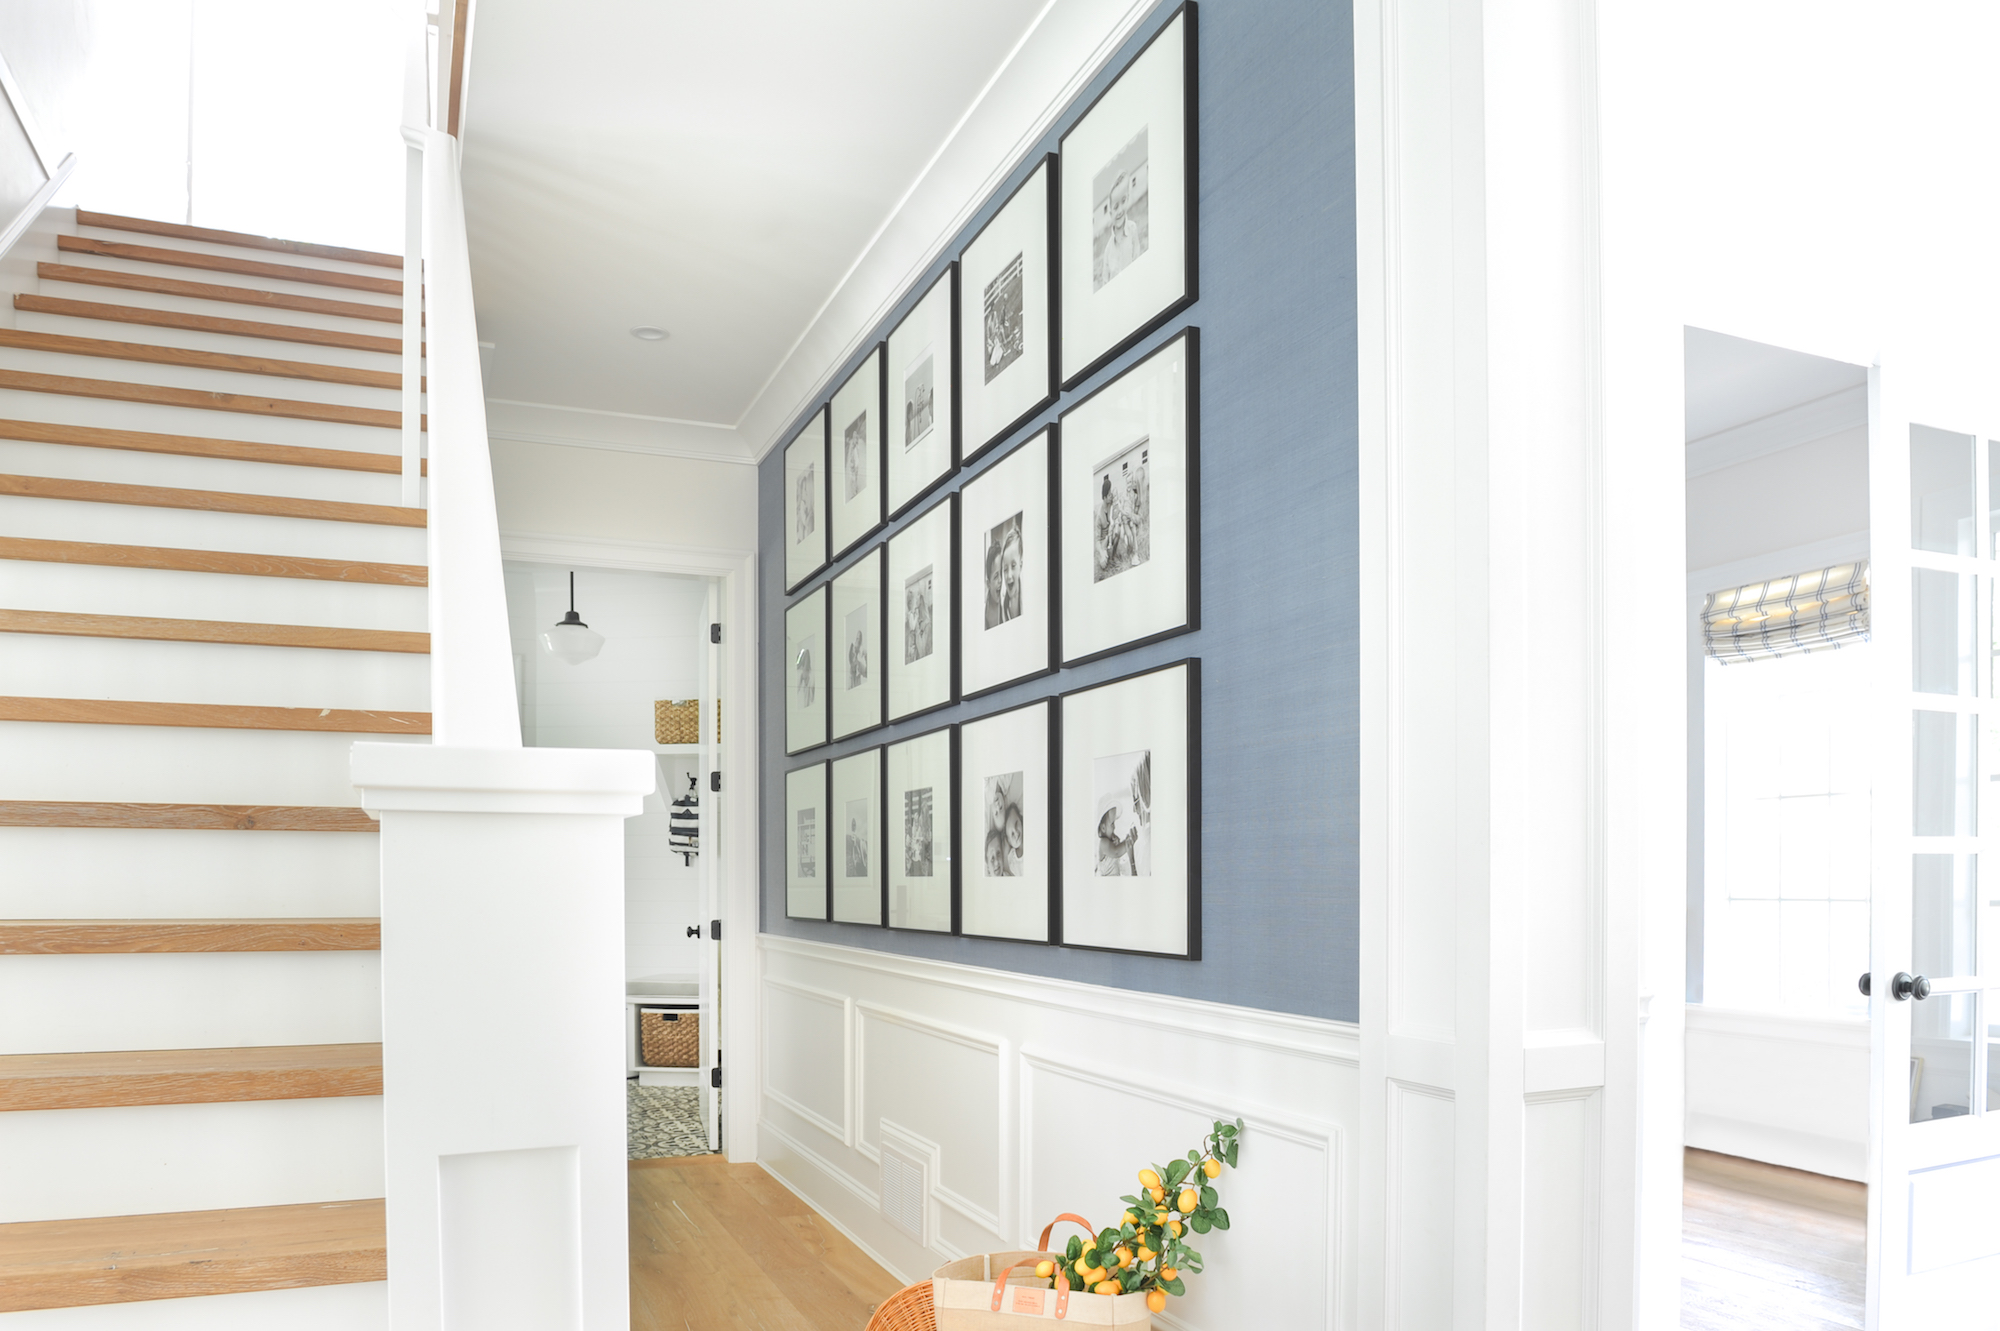 home gallery wall how to choose the perfect style of gallery wall frames. Black Bedroom Furniture Sets. Home Design Ideas